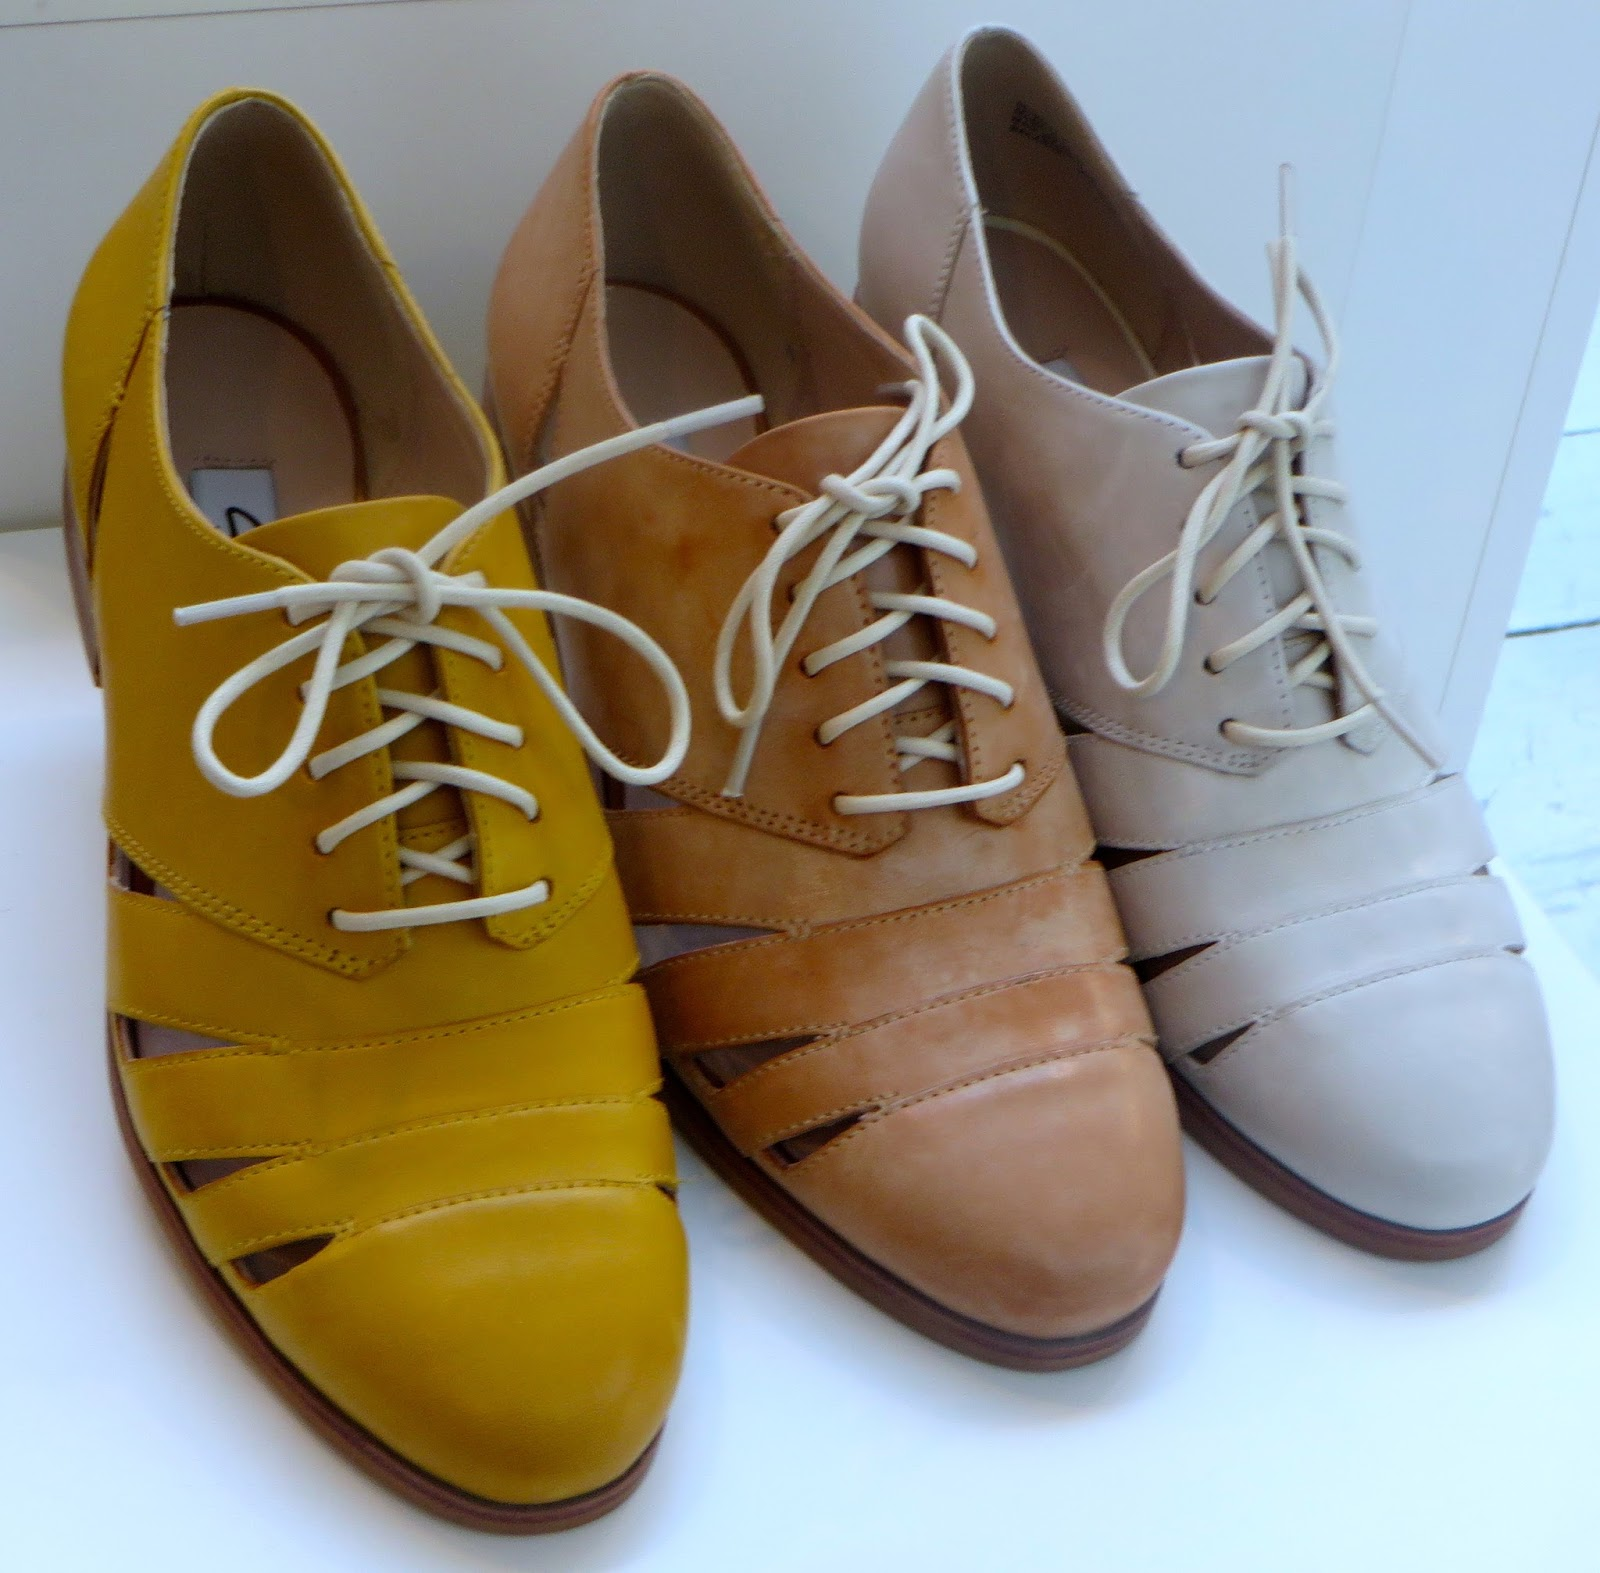 9afc6686b421 cut-outs in lace-up spring take on formal shoe-in pretty muted tones Hotel  Image---block heel